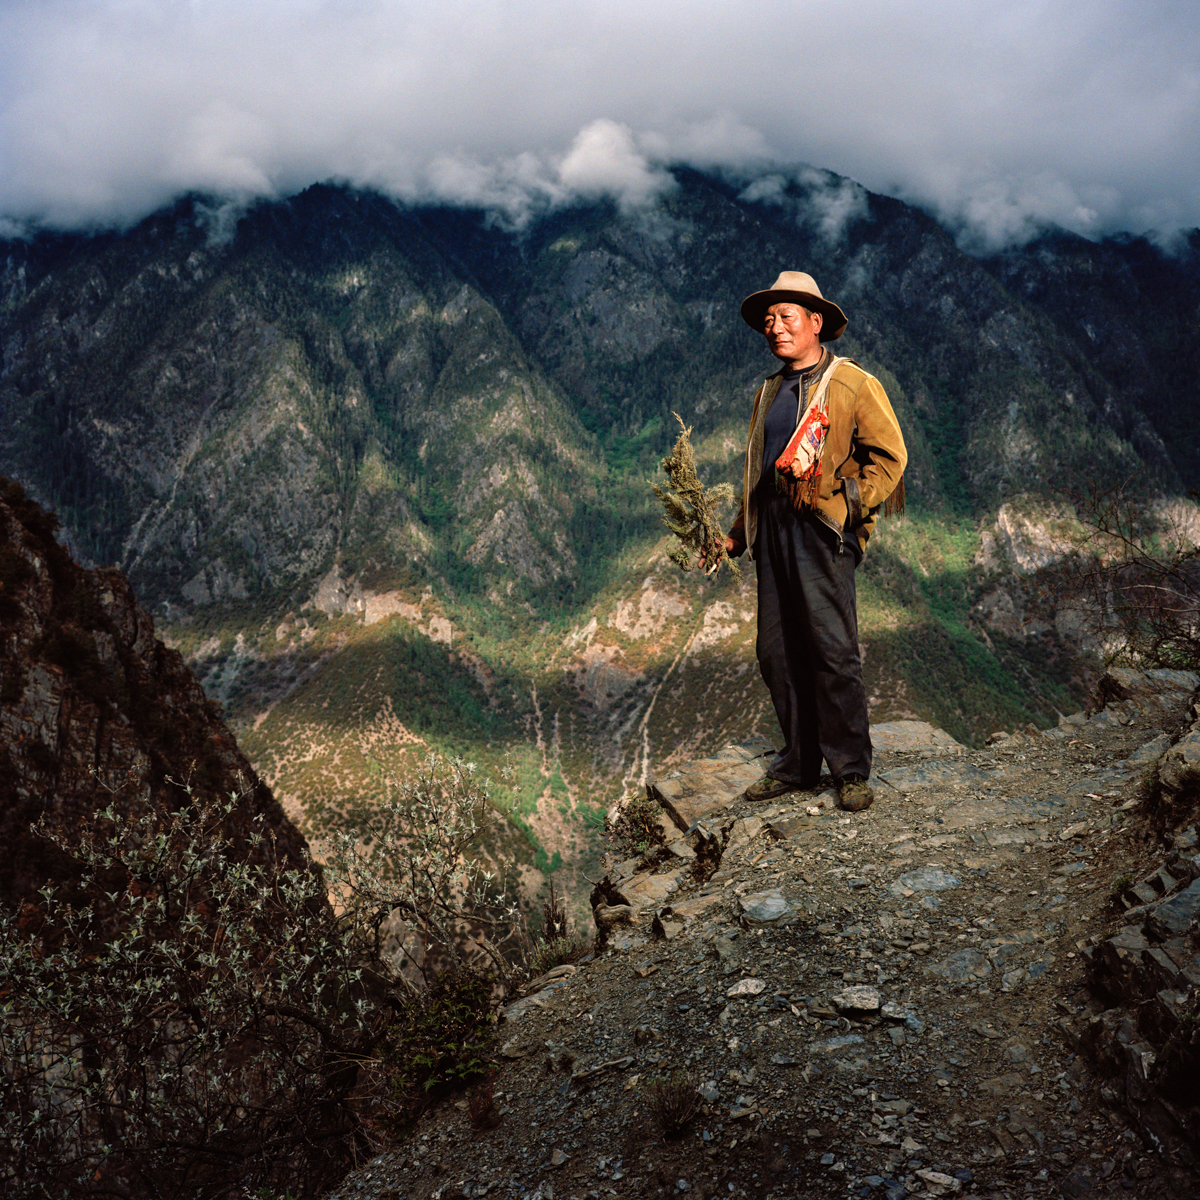 May 2012. Tibet province, China. Portrait of a Tibetan farmer from the village of Laide at 3100m high on the trail of the buddhist pilgrimage of the Kawa Karpo.